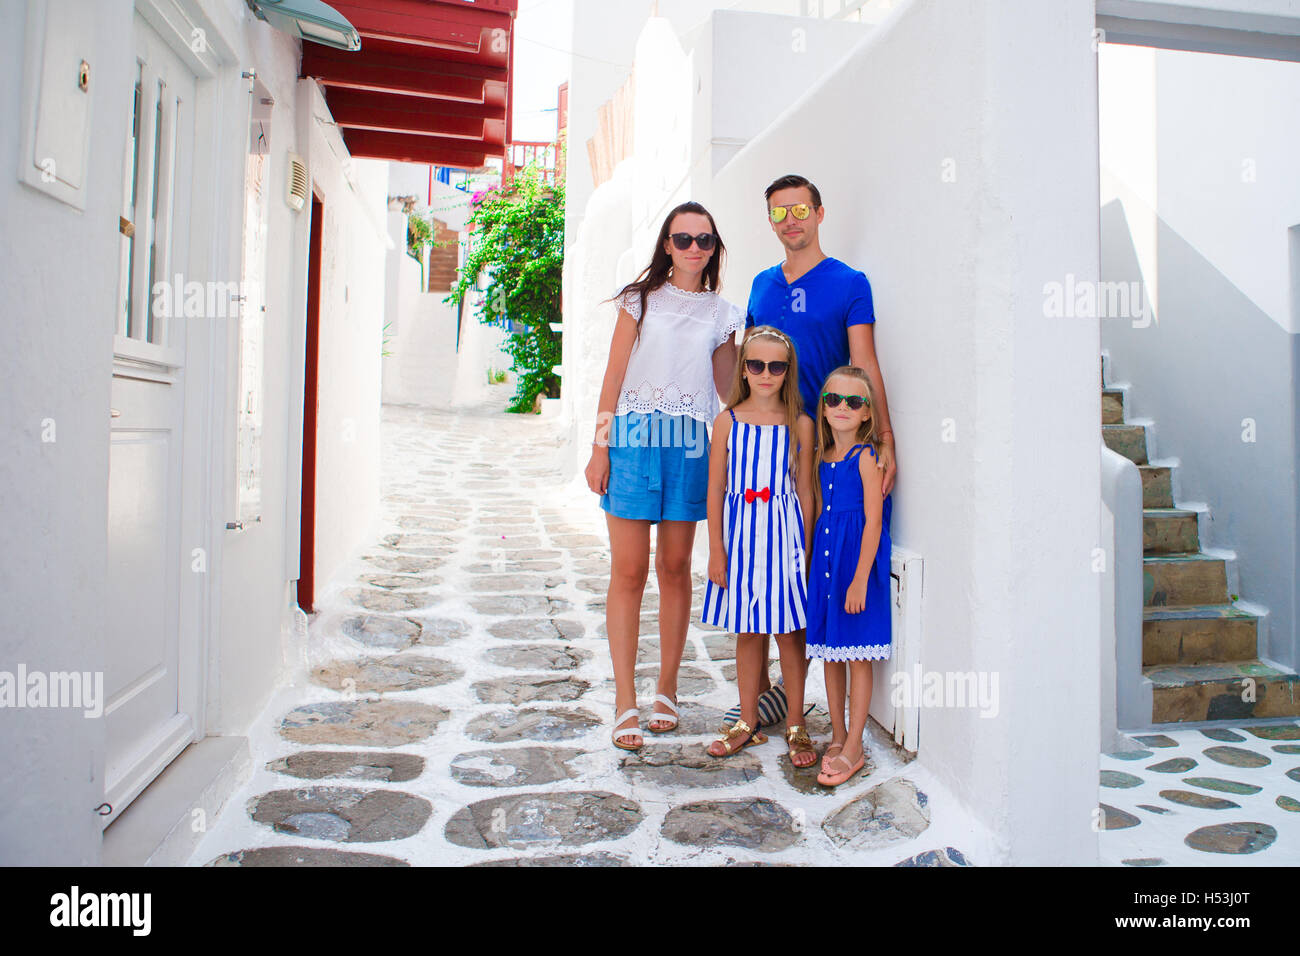 Family Vacation In Europe Parents And Kids At Street Of Typical Greek Traditional Village On Mykonos Island Greece